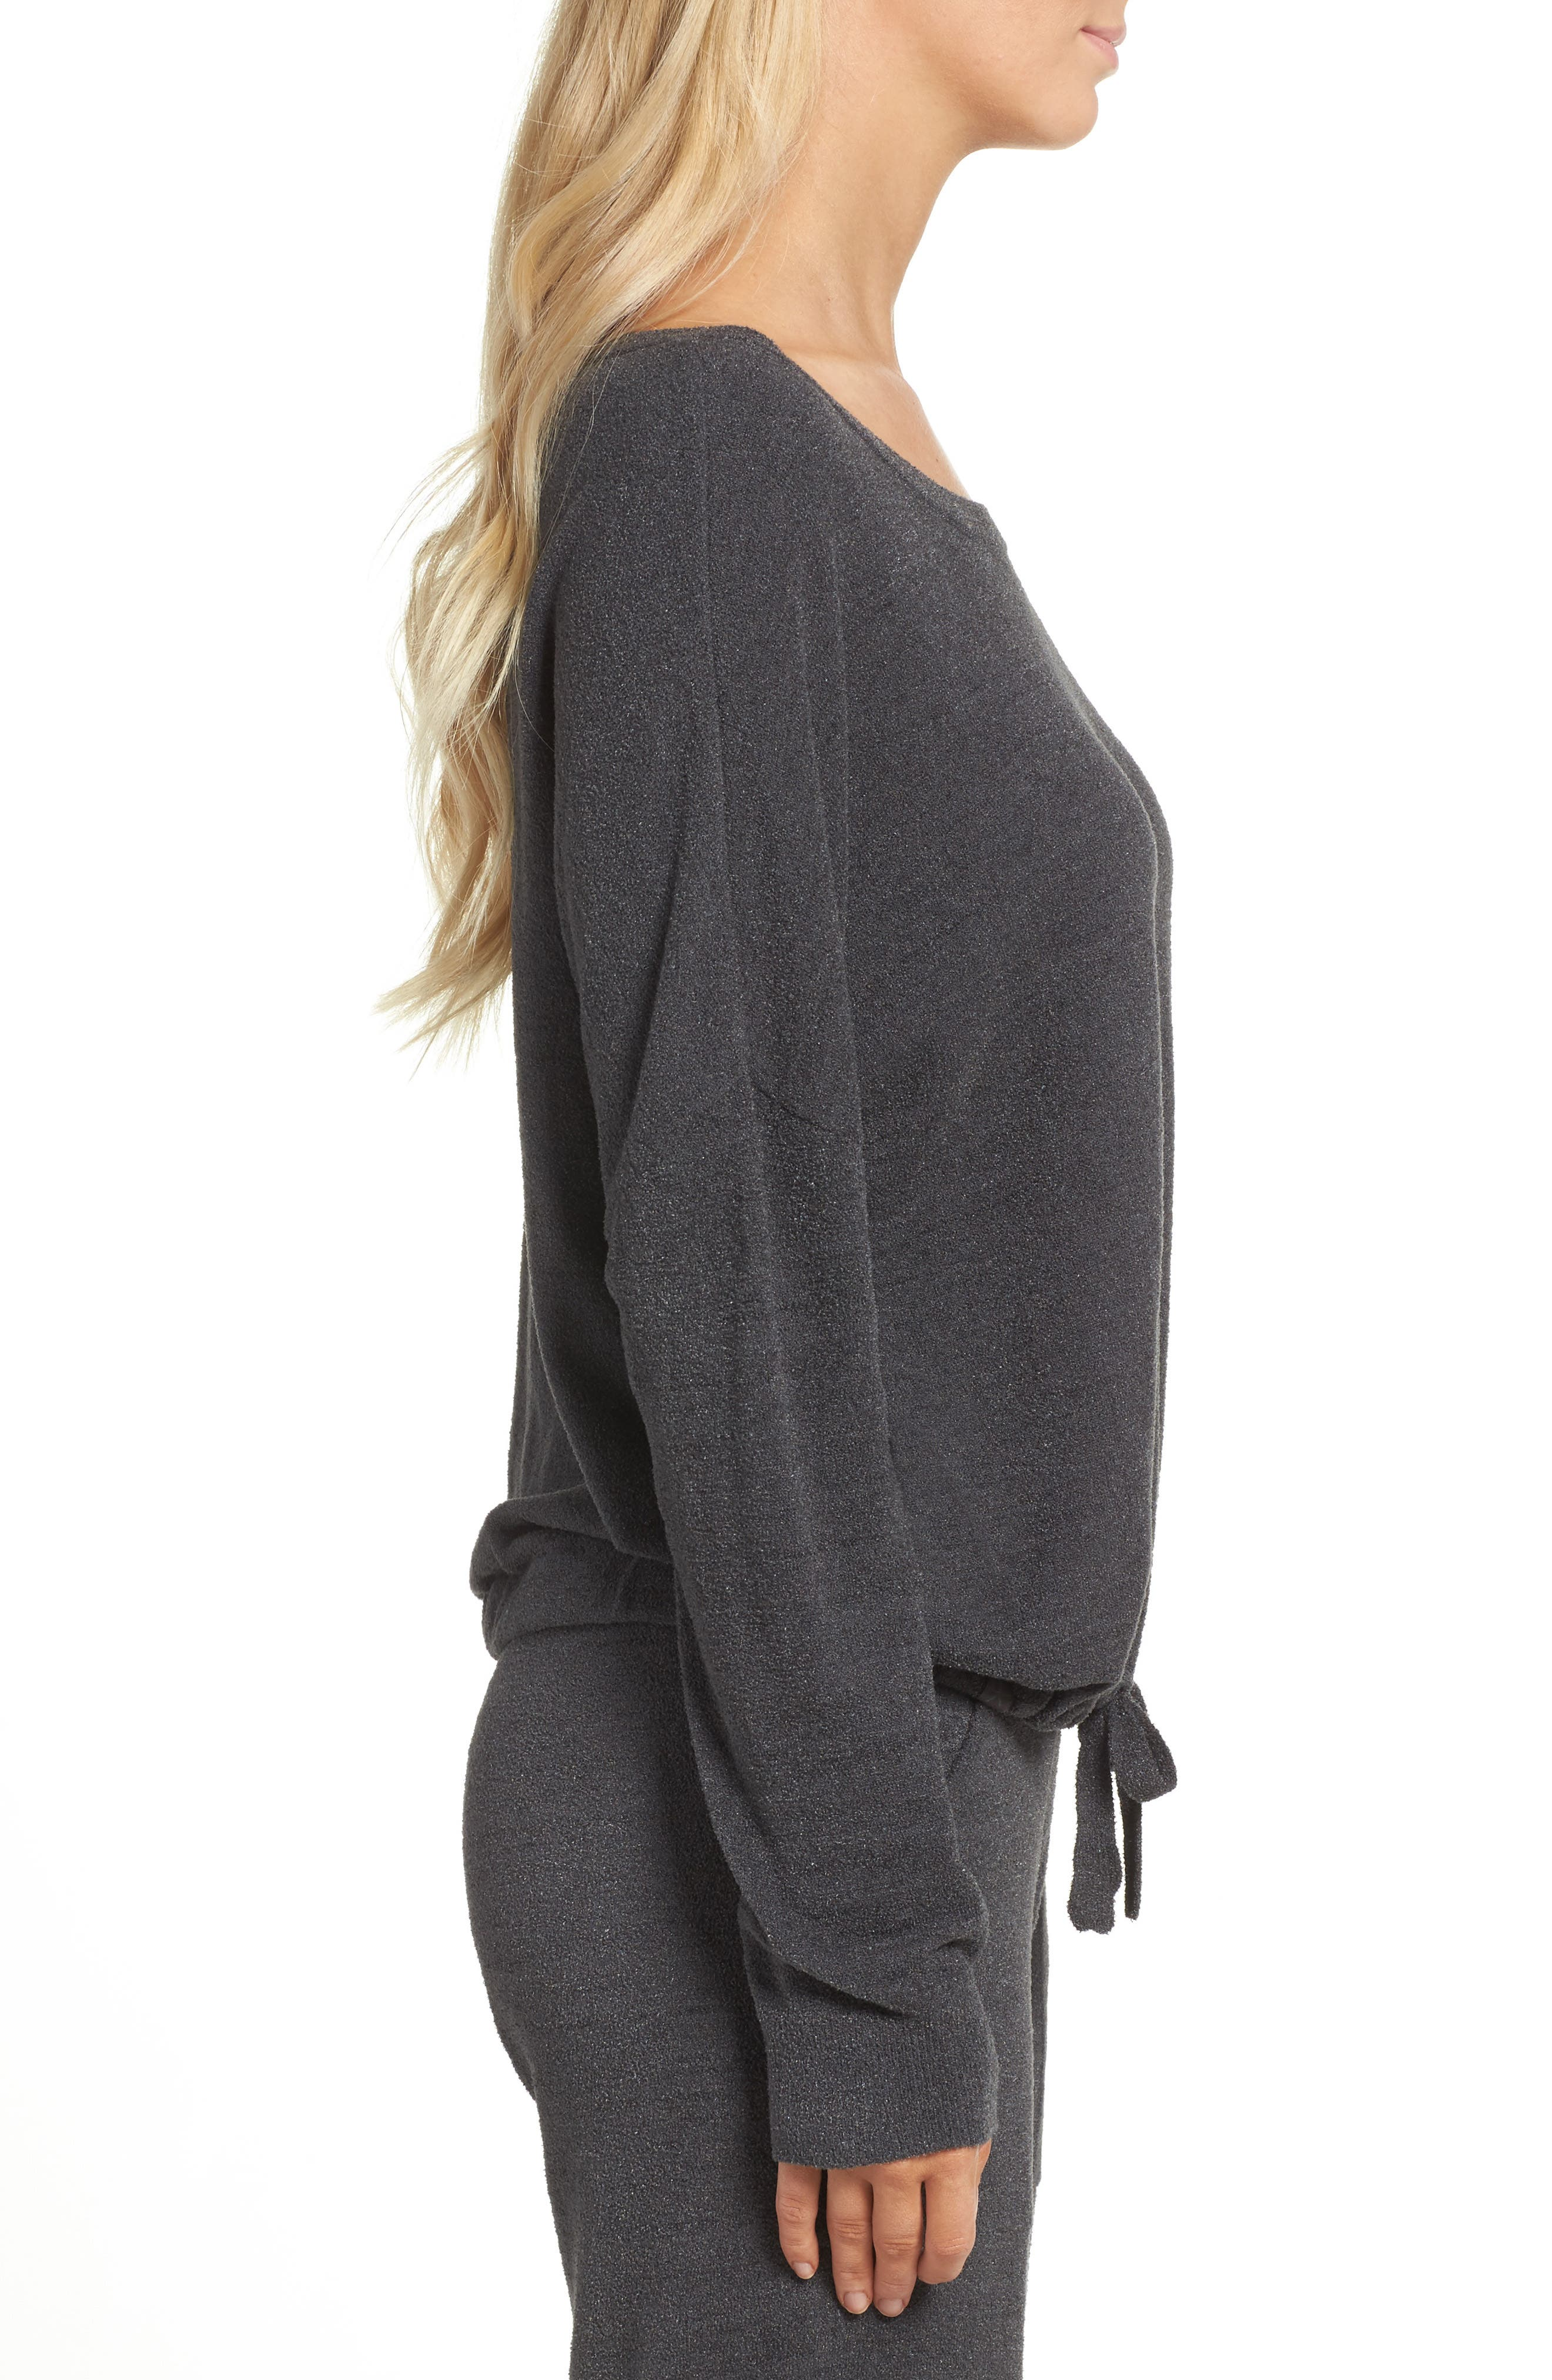 Cozychic Ultra Lite<sup>®</sup> Lounge Pullover,                             Alternate thumbnail 3, color,                             CARBON